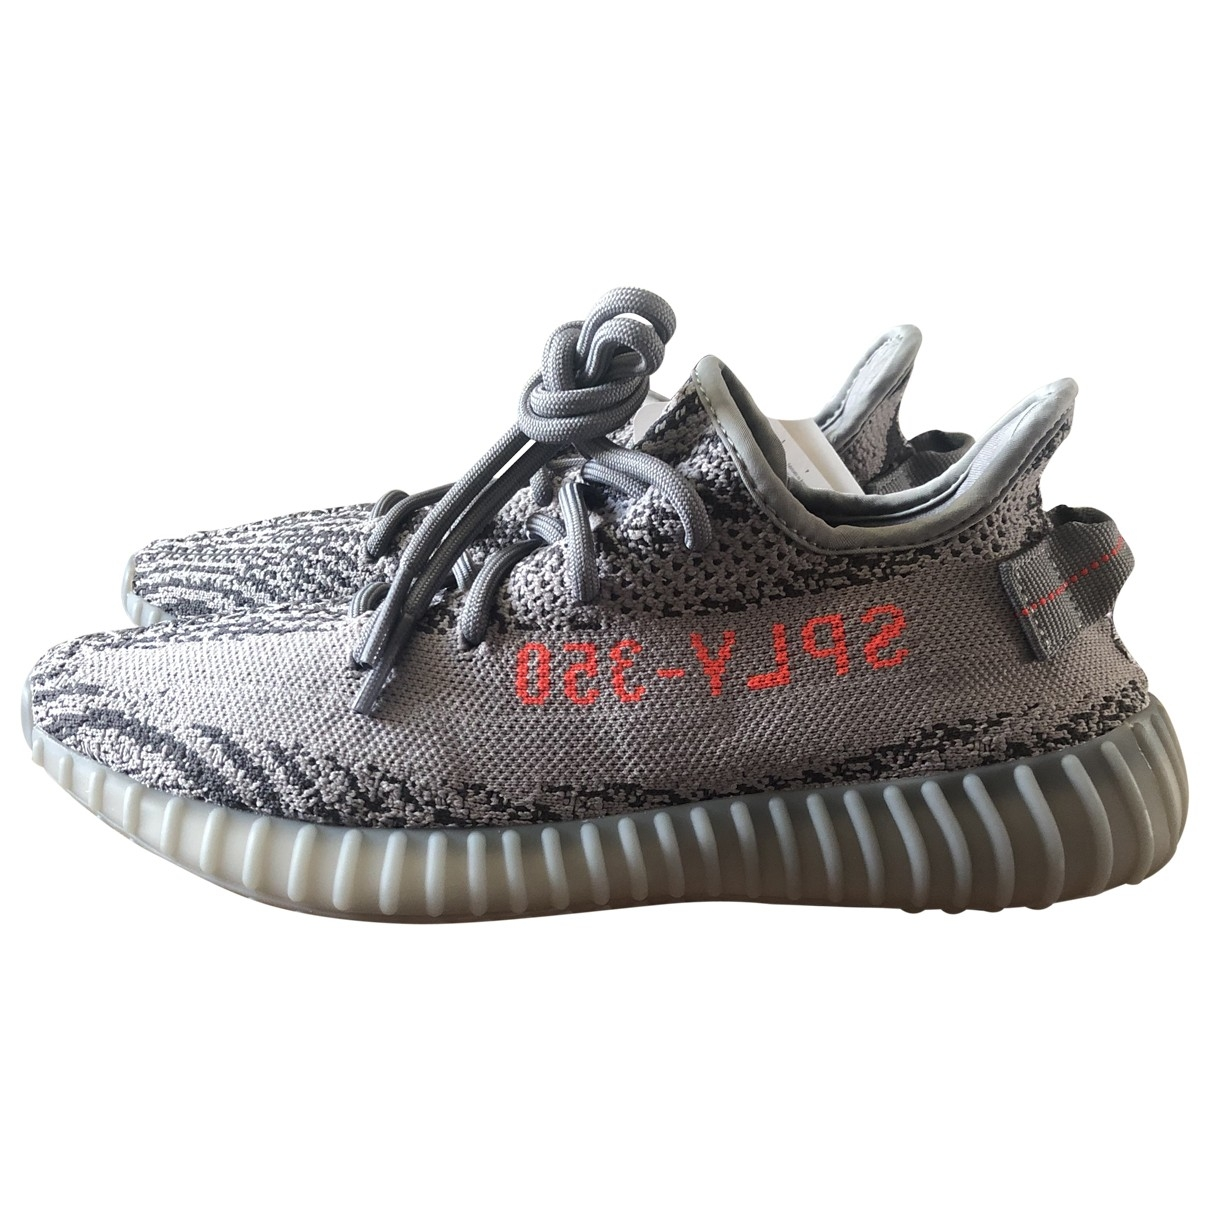 Yeezy X Adidas - Baskets   pour homme en toile - anthracite